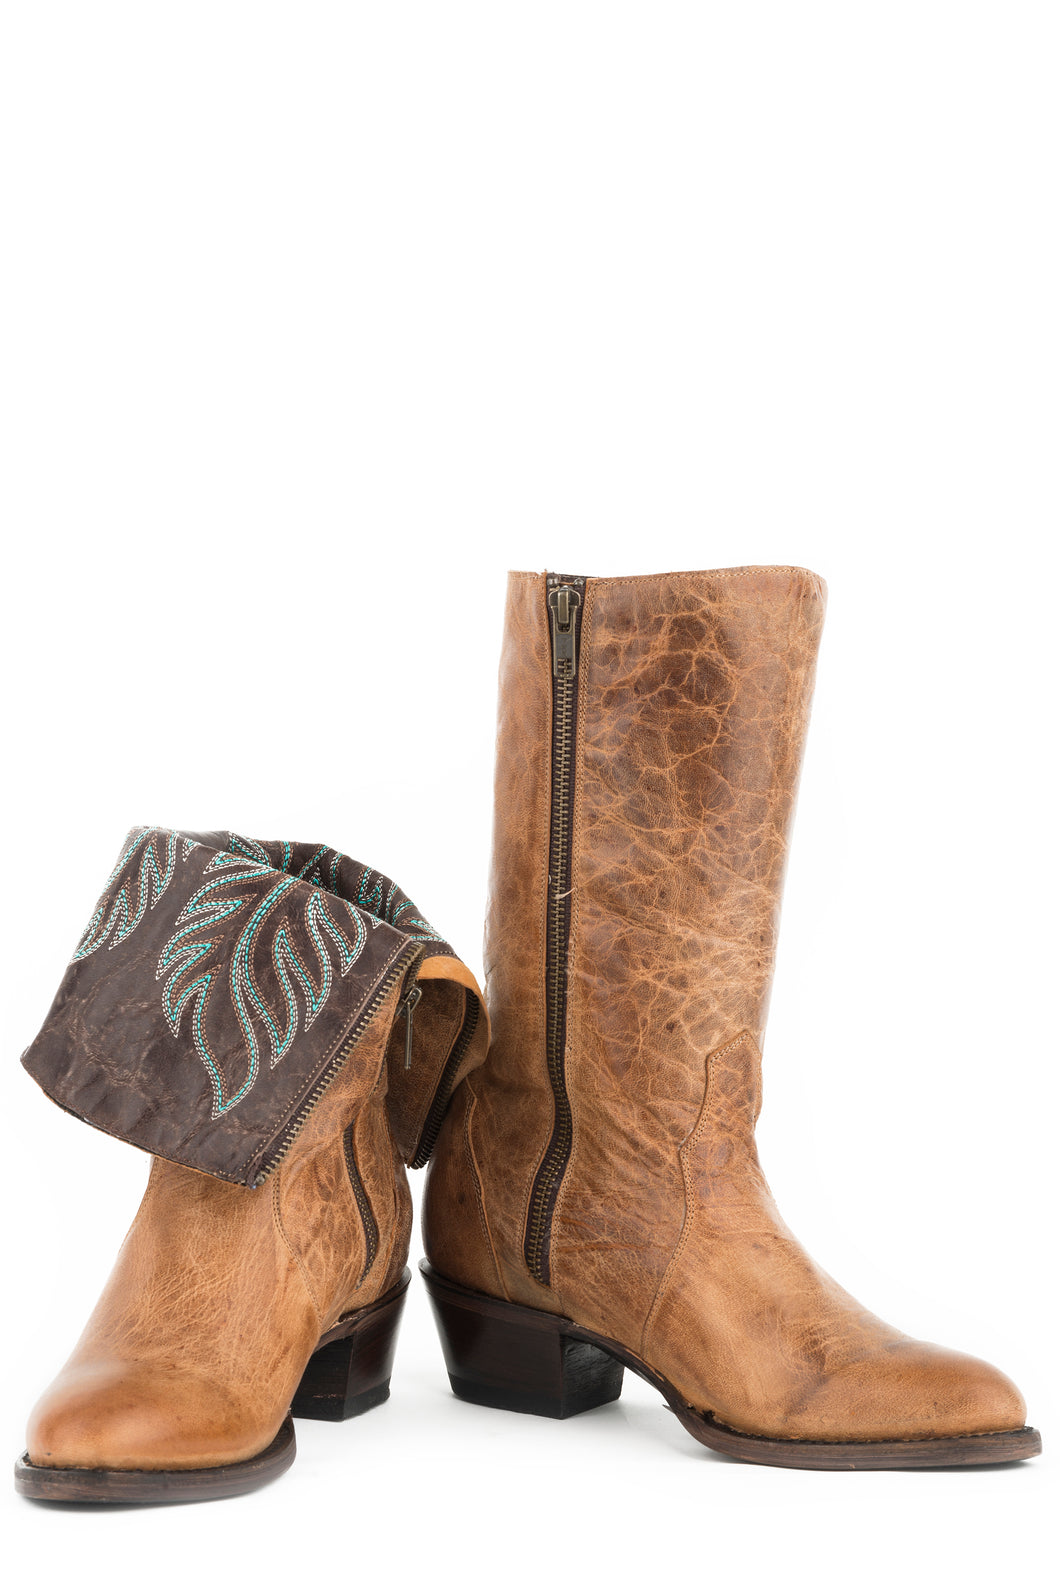 Woodlands Round Boot Womens Boots Marbled Tan Leather Vamp Shaft